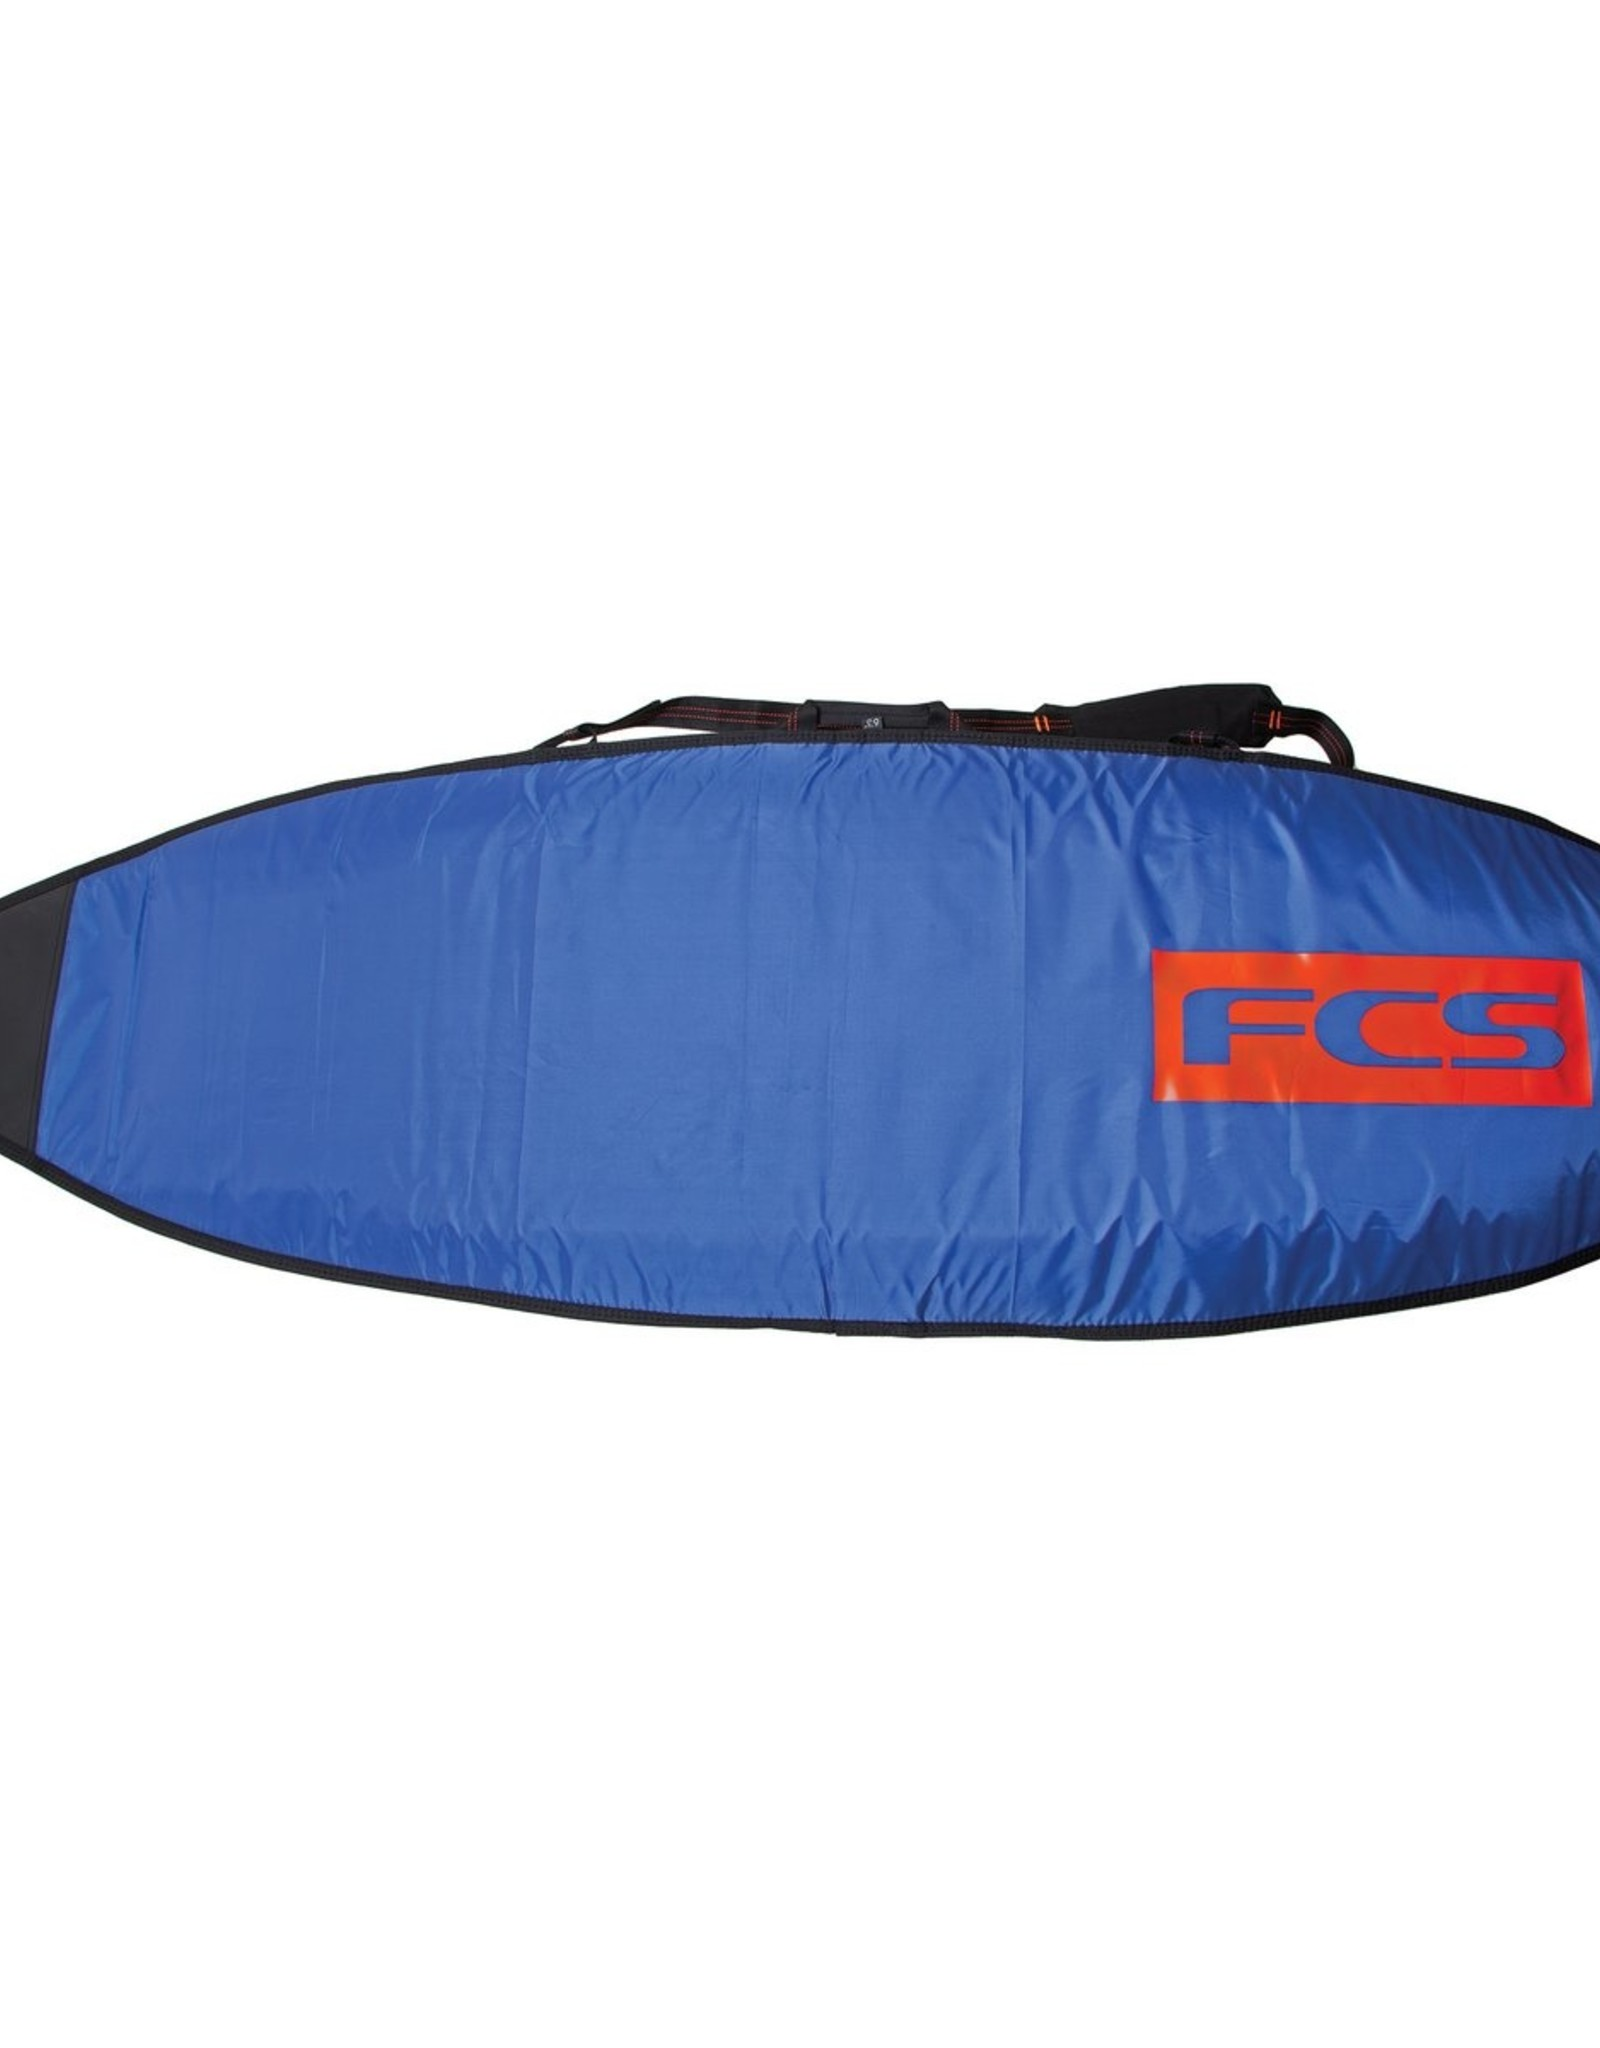 FCS FCS Classic Funboard Bags  7ft Steel-Blue White